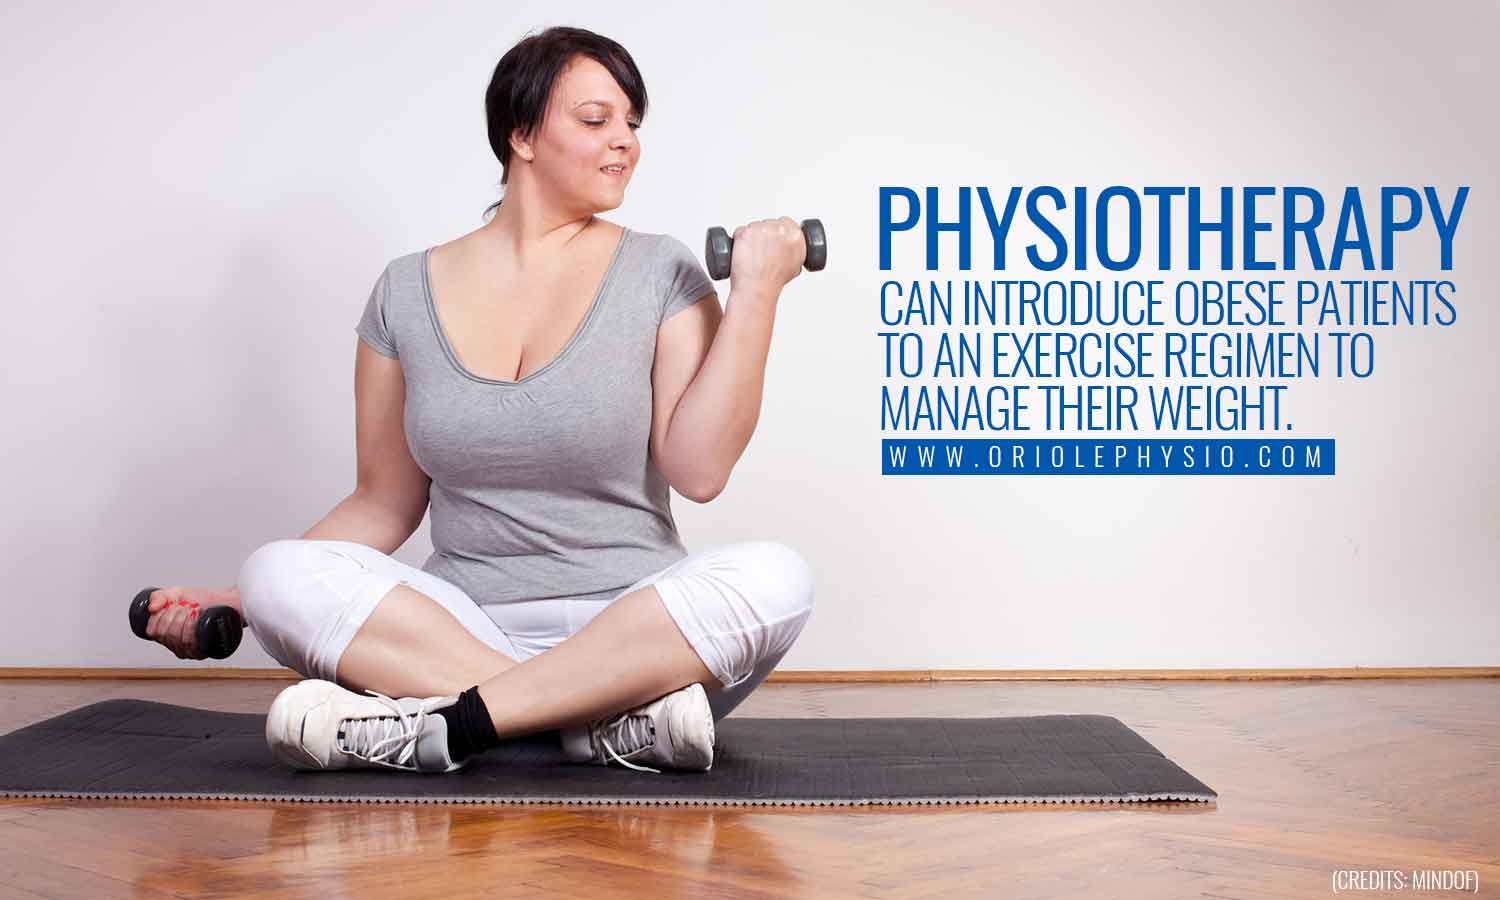 Physiotherapists can introduce obese patients to an exercise regimen to manage their weight.